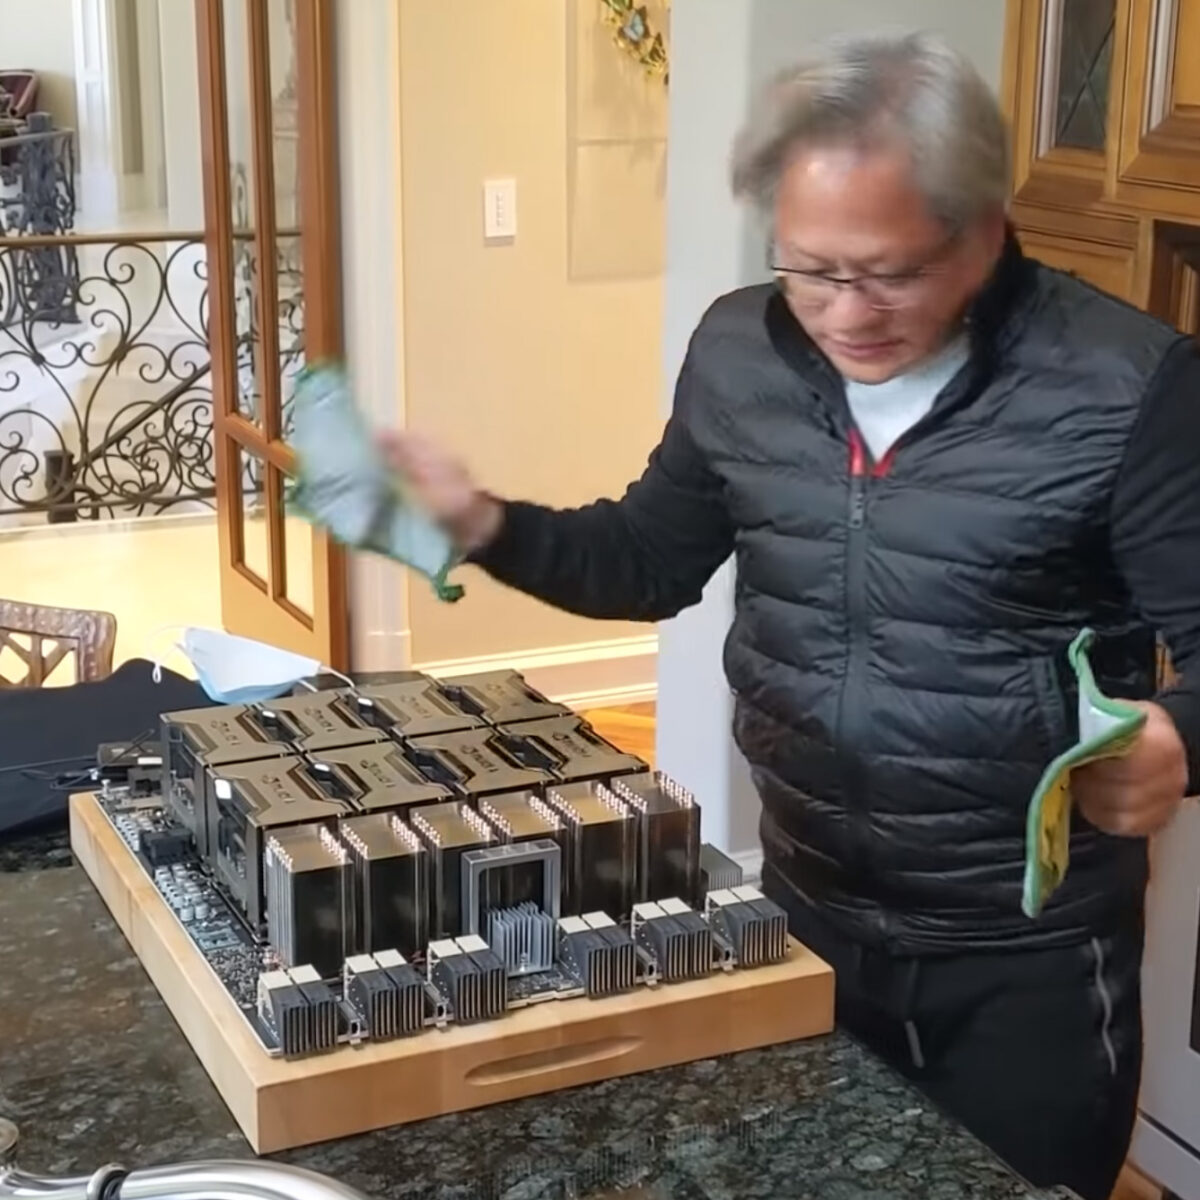 NVIDIA's Jensen Huang With World's Largest Graphics Card